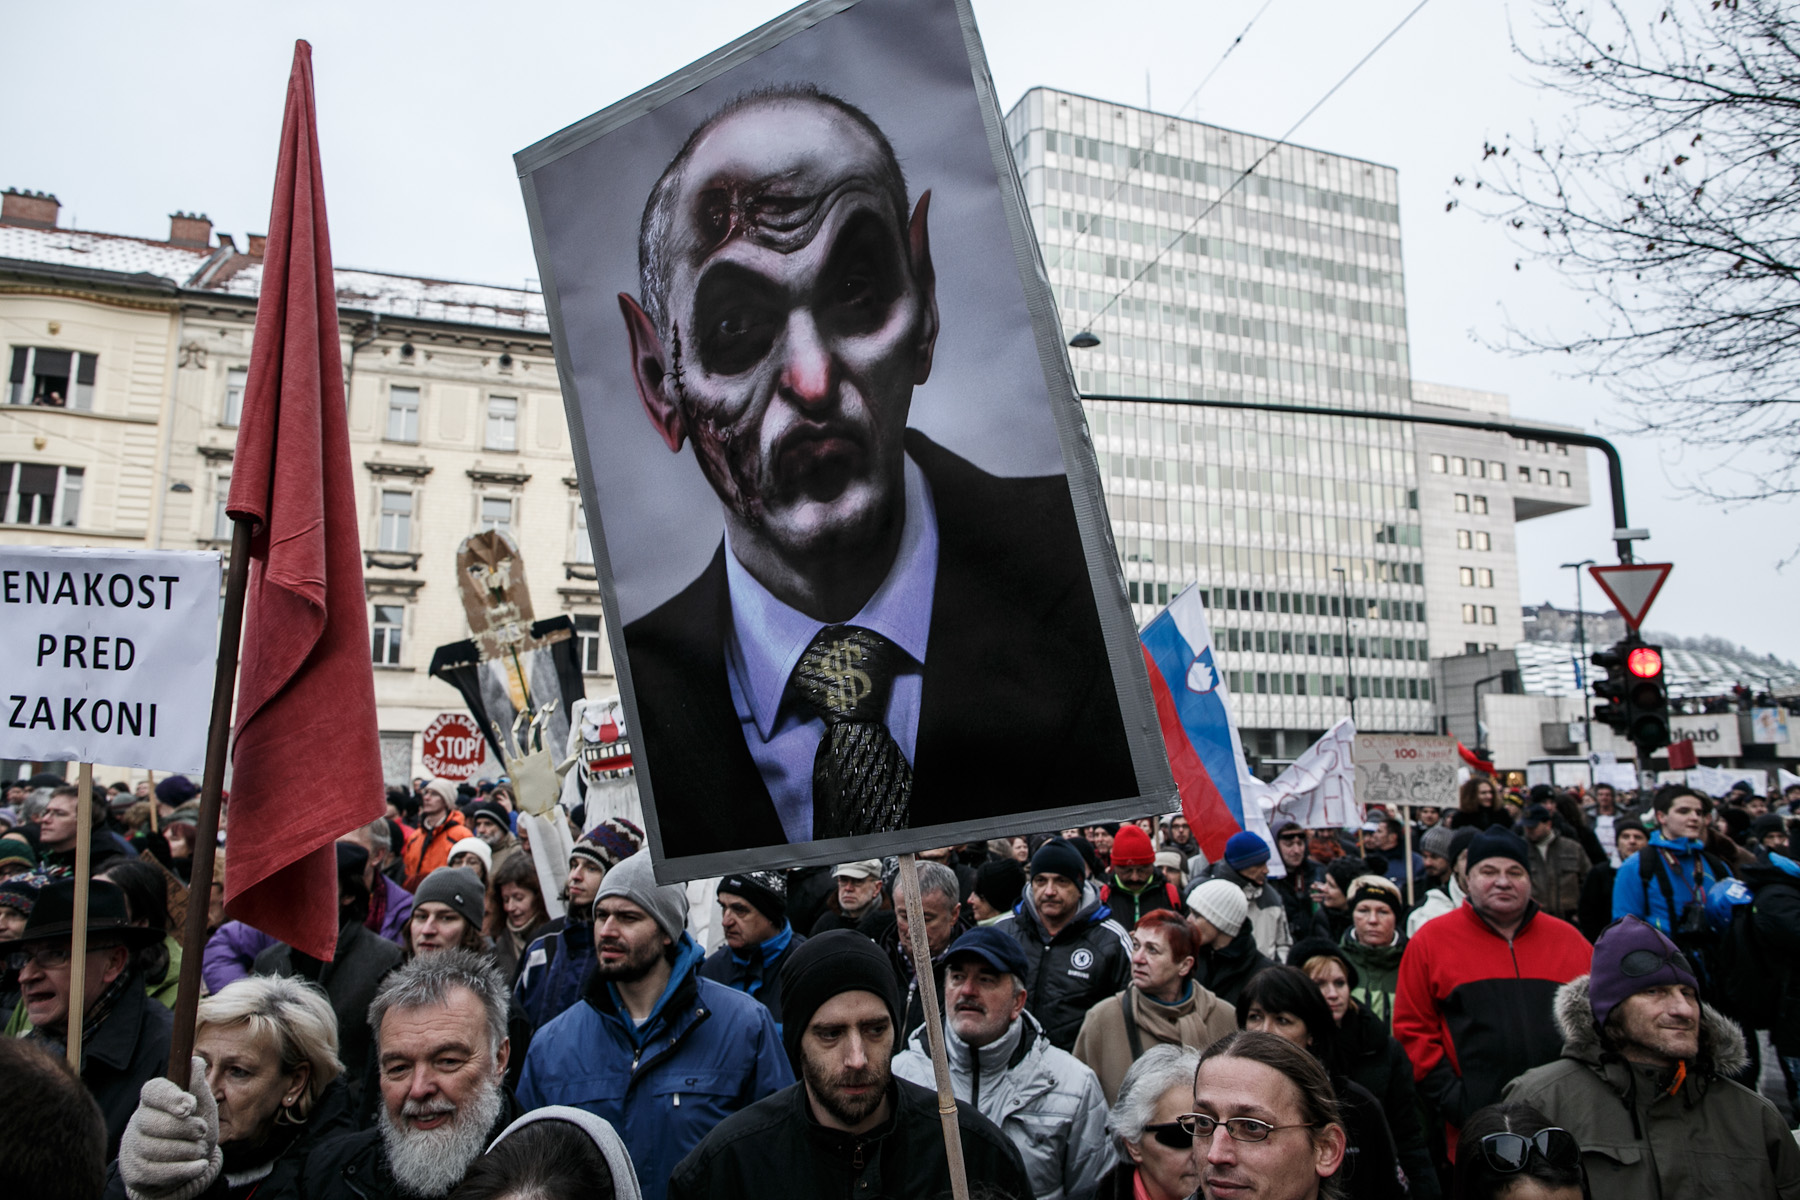 A protester carries a poster of prime minister Janez Jansa as a zombie during the third countrywide uprising against the government in Ljubljana, Slovenia, on February 8, 2013.